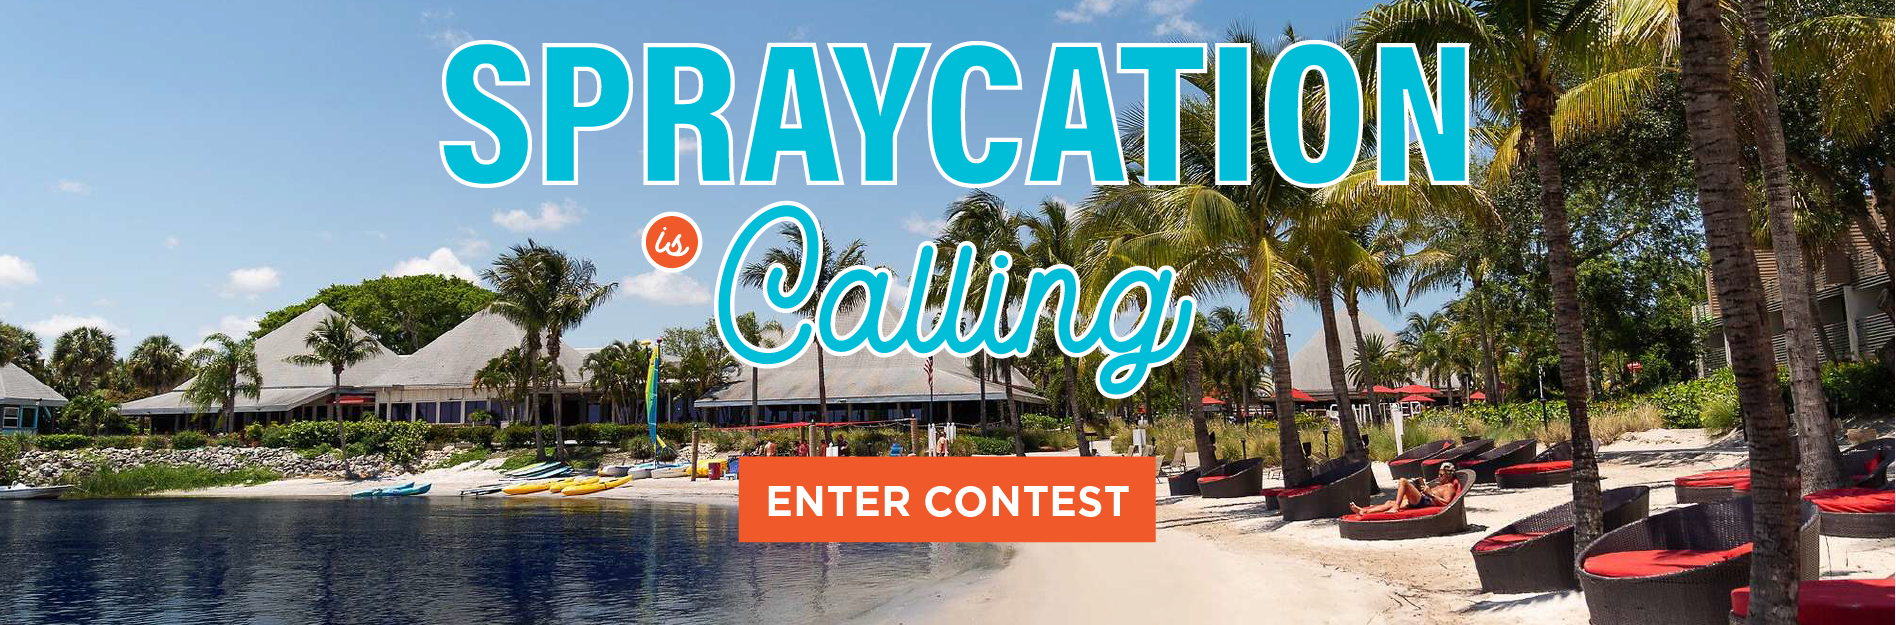 Register for the Contest